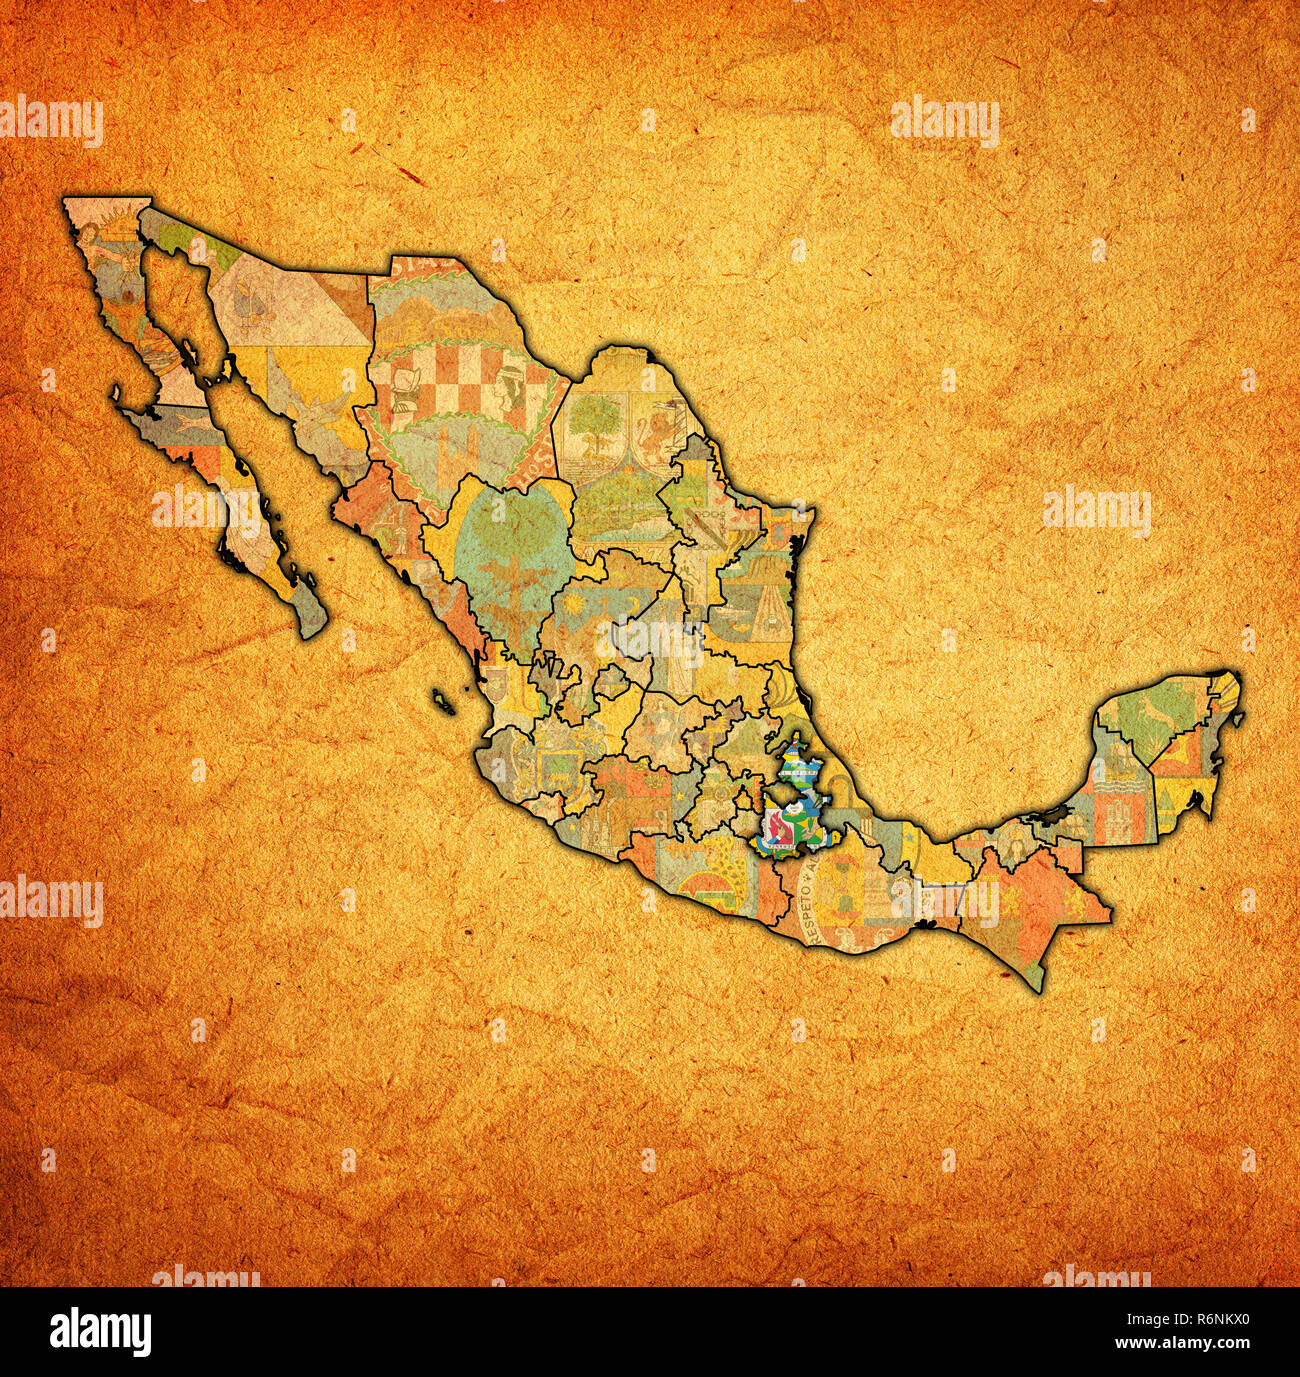 Puebla On Administration Map Of Mexico Stock Photo 227899336 Alamy